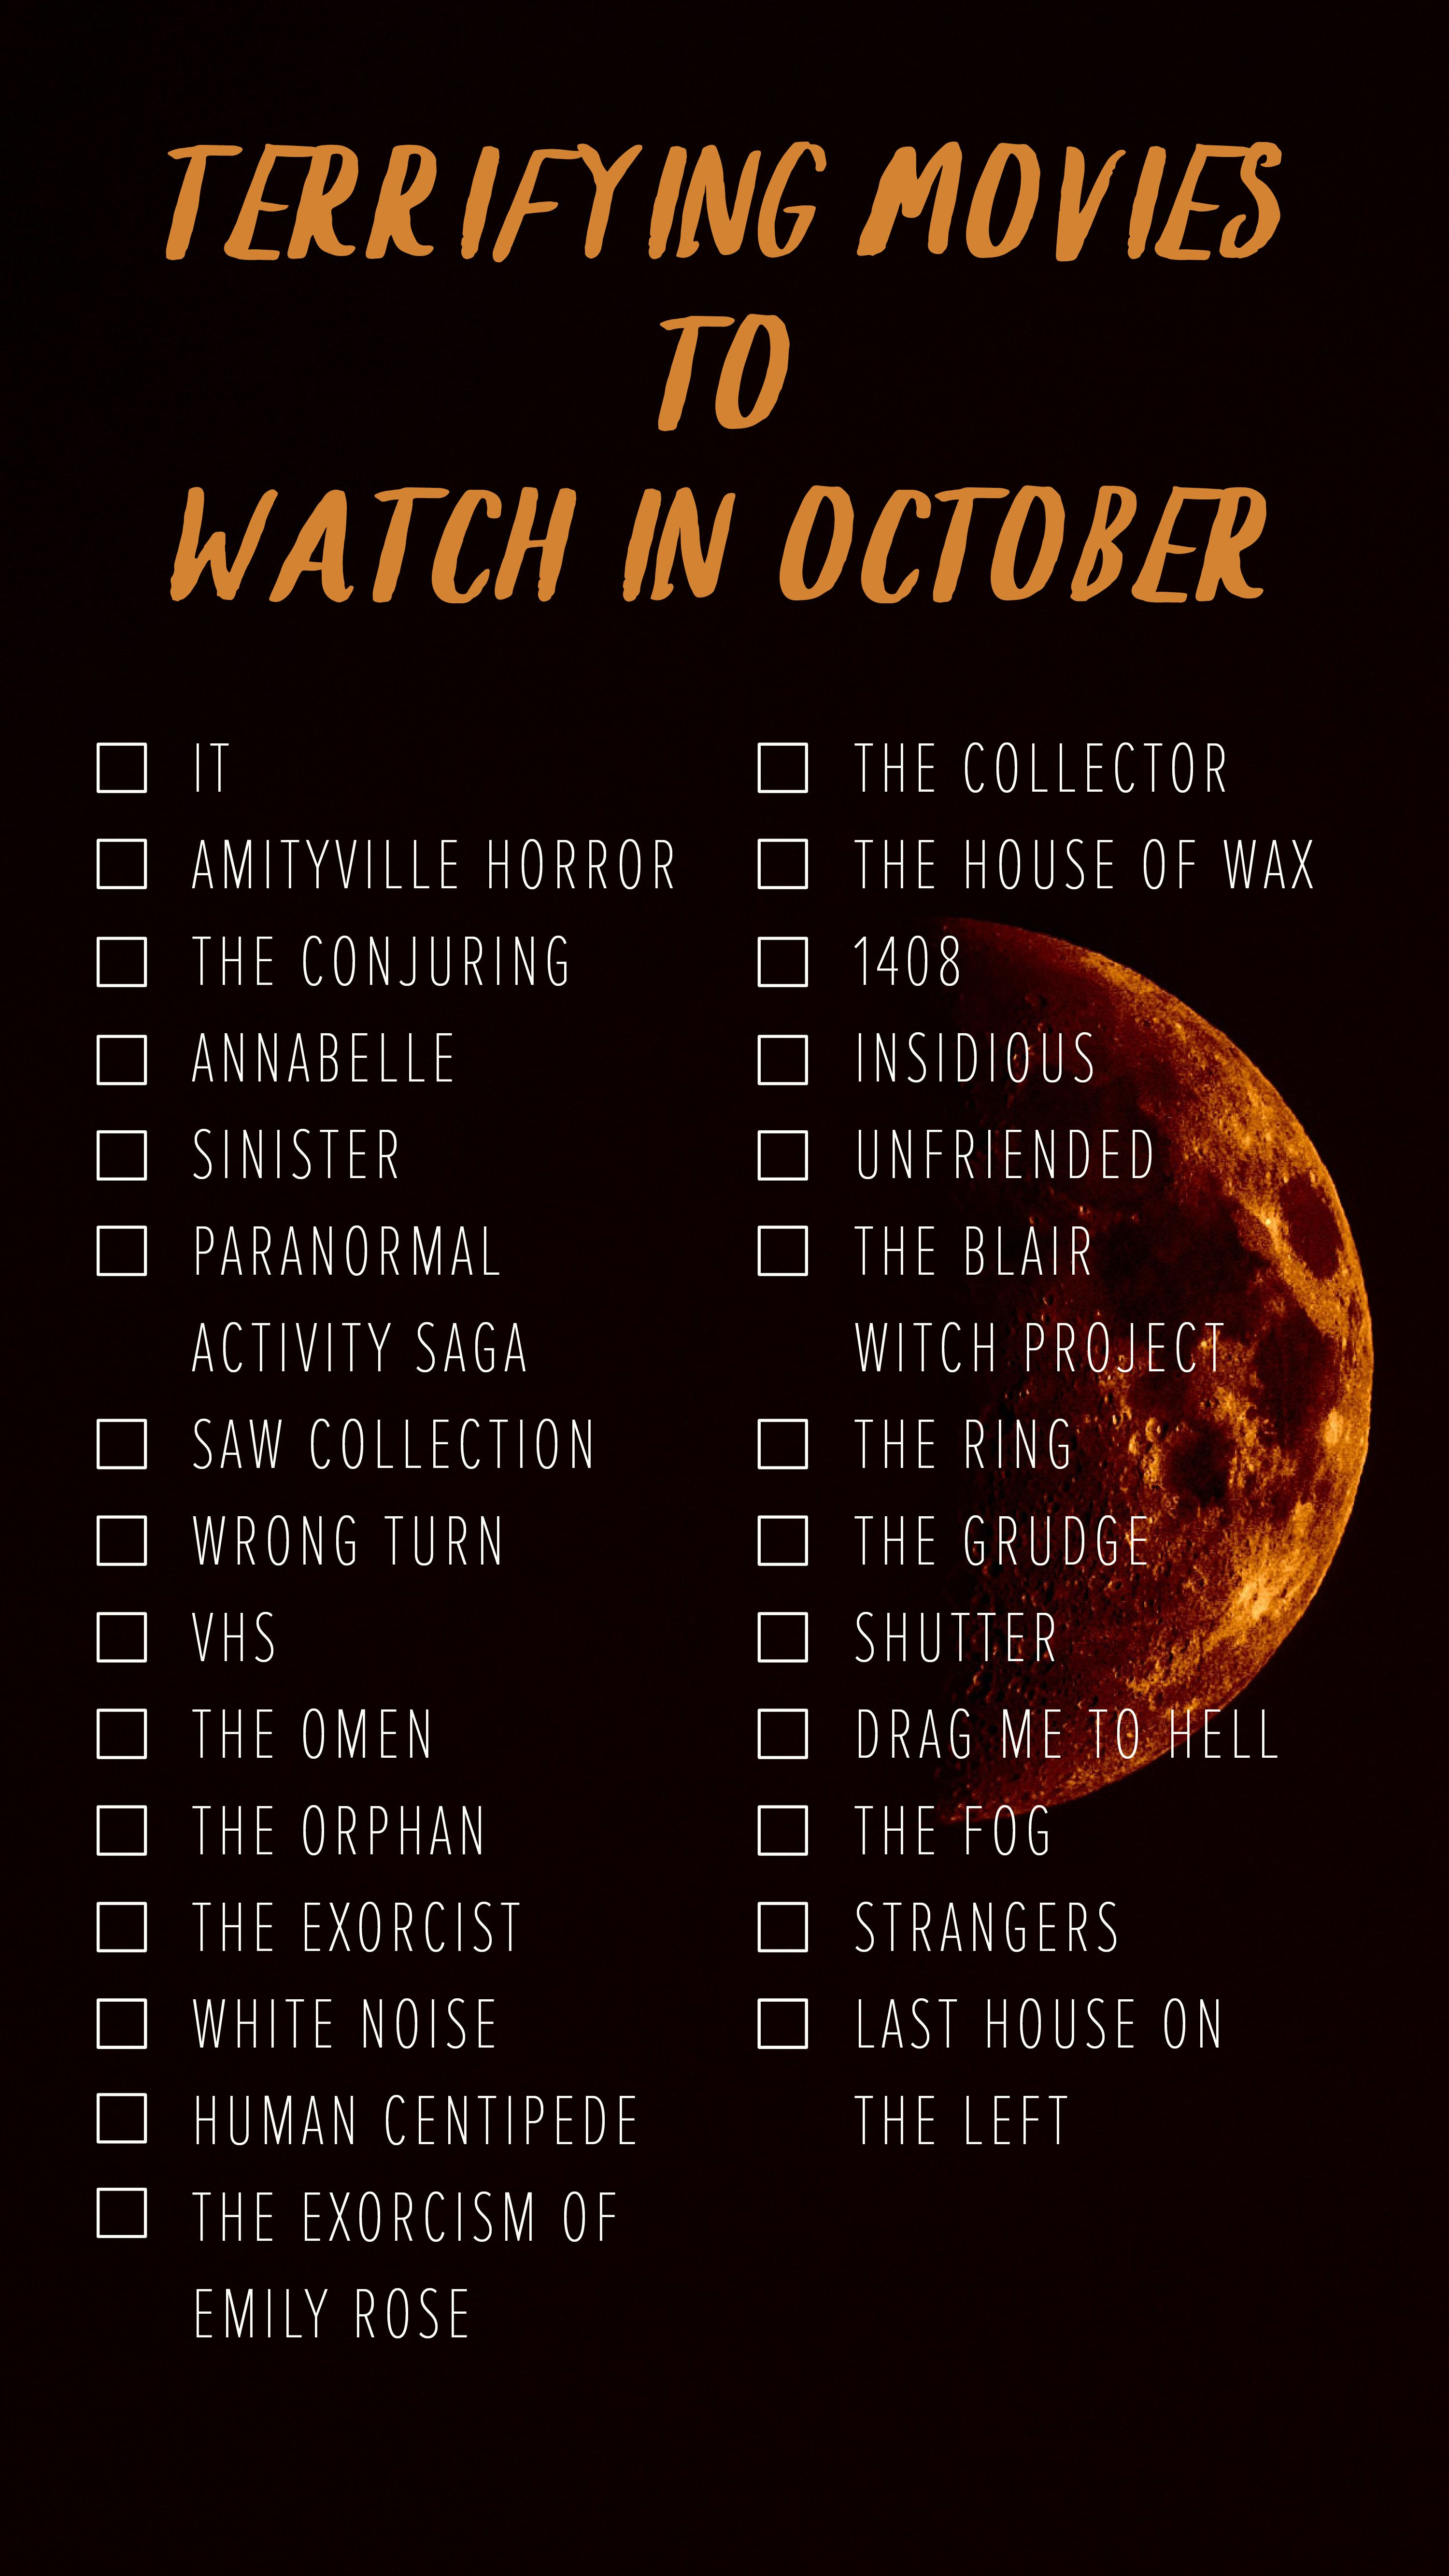 Terrifying Movies to Watch In October scarymovienight